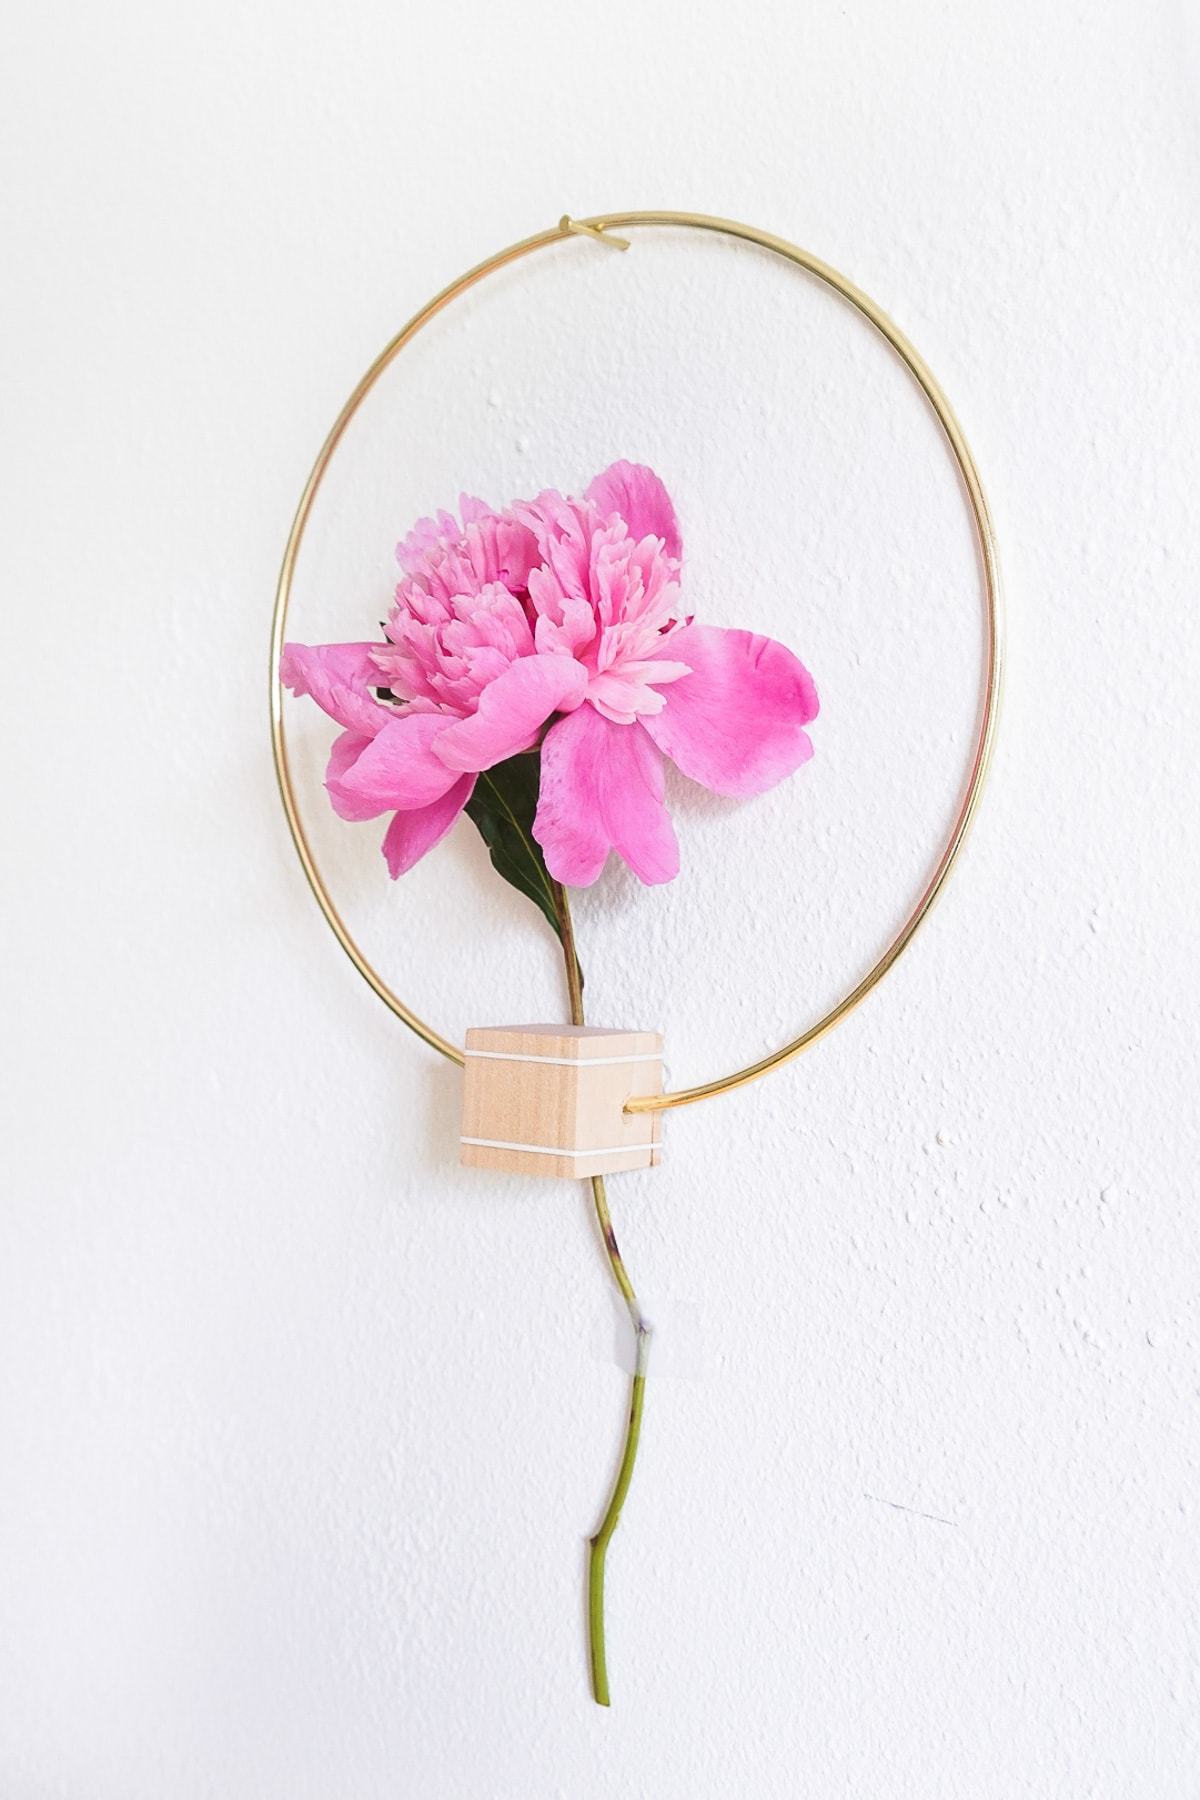 DIY Minimalist Flower Wall Hang (Erin)-7 - Sugar & Cloth